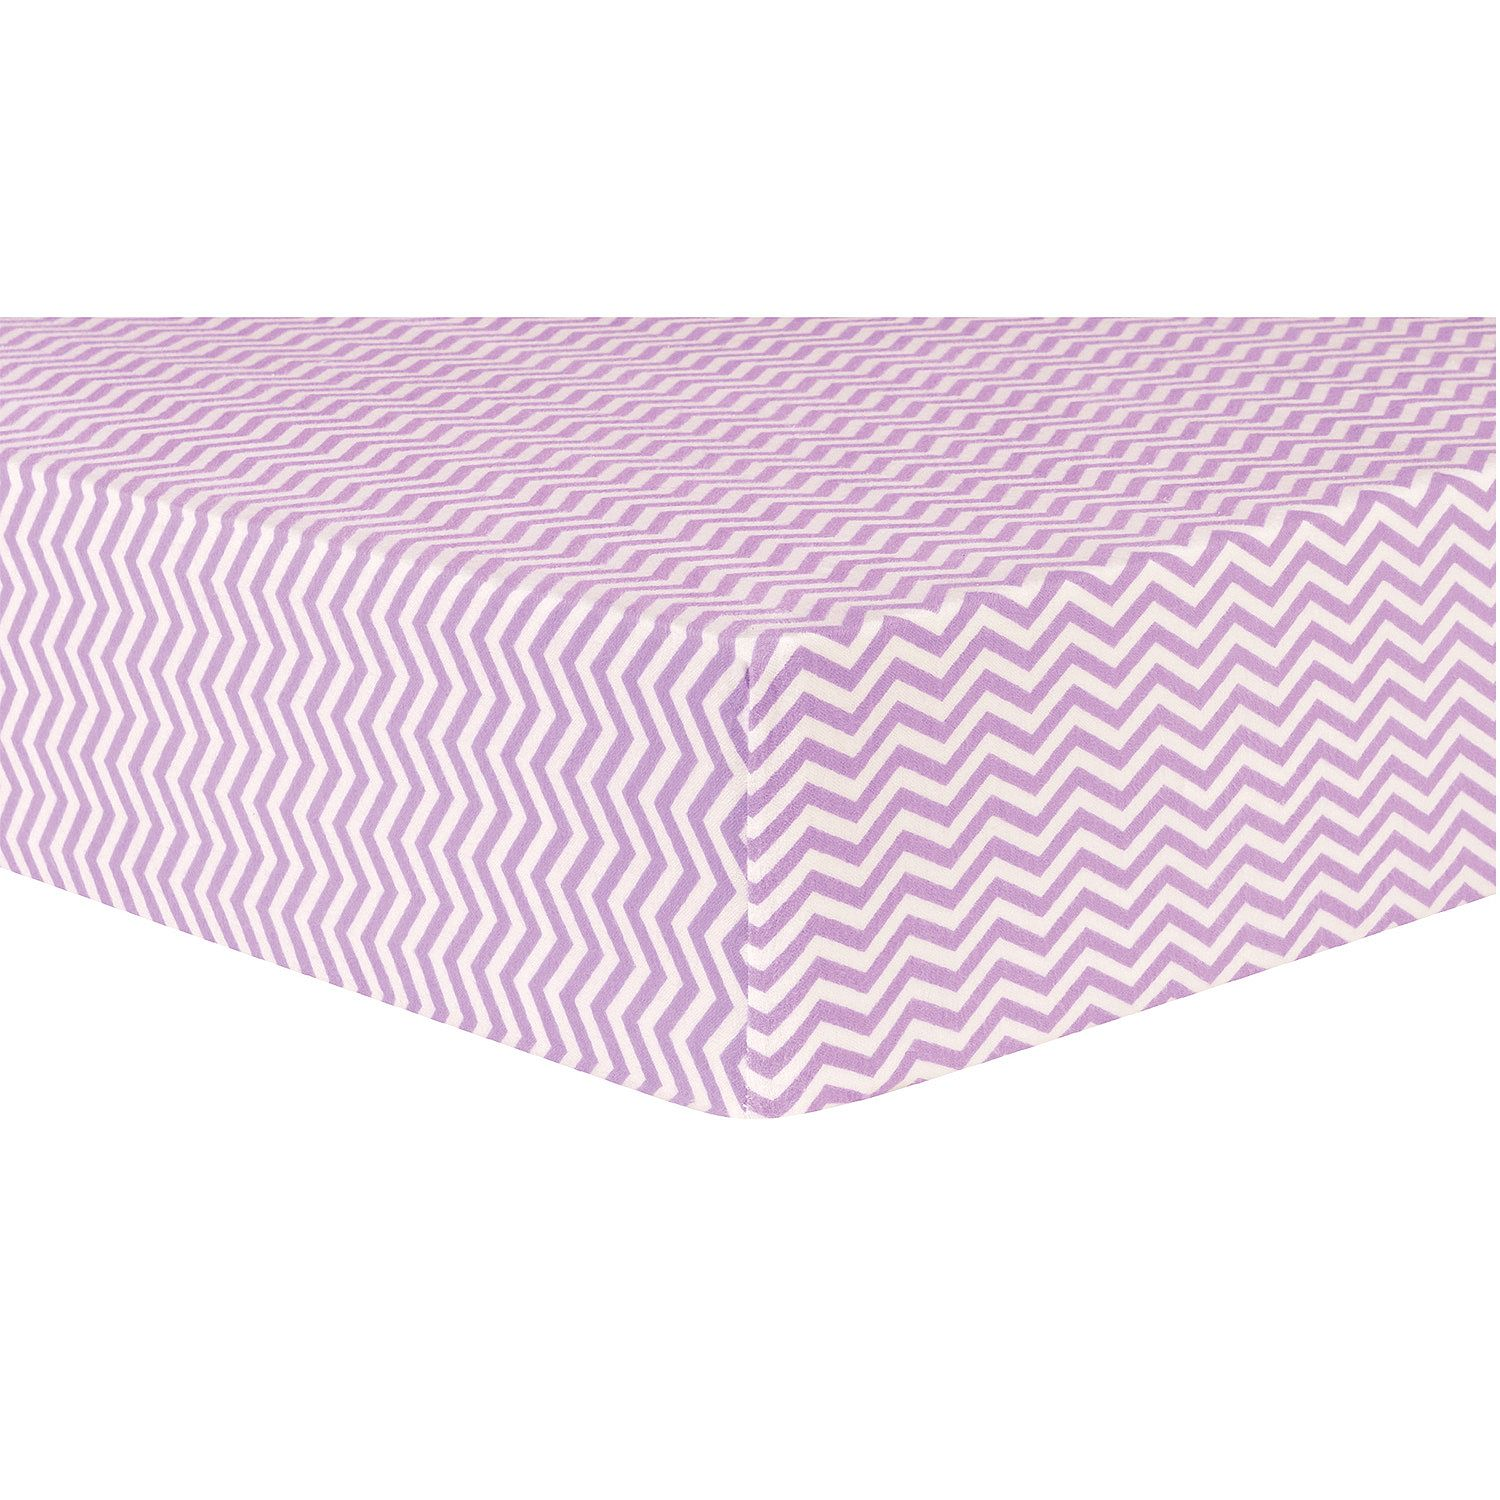 Product of Trend Lab Deluxe Flannel Fitted Crib Sheet, Lilac Chevron - Sheets [Bulk Savings]